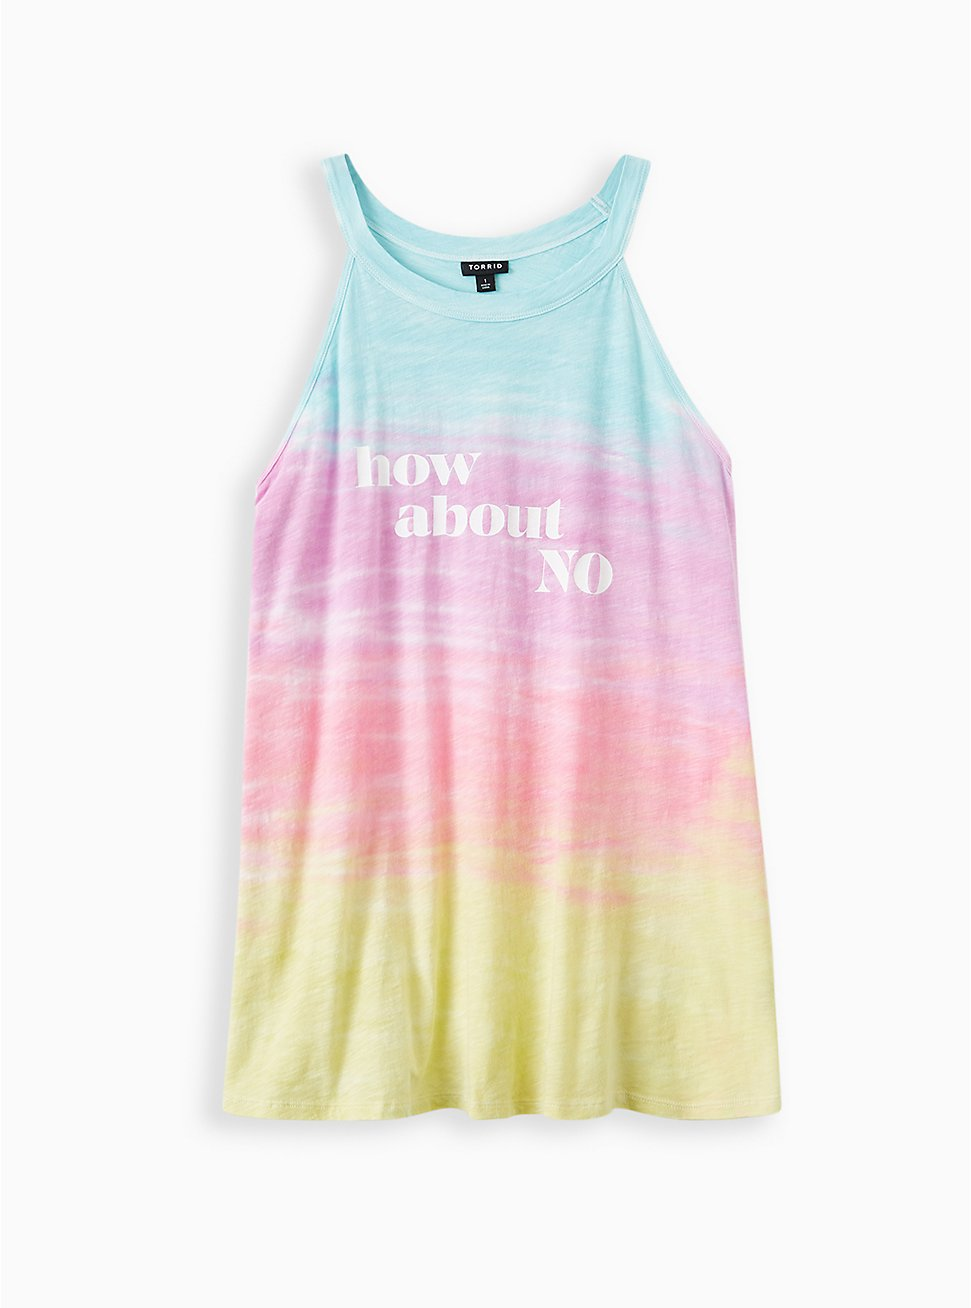 How About No Multi Wash High Neck Tank, TIE DYE, hi-res